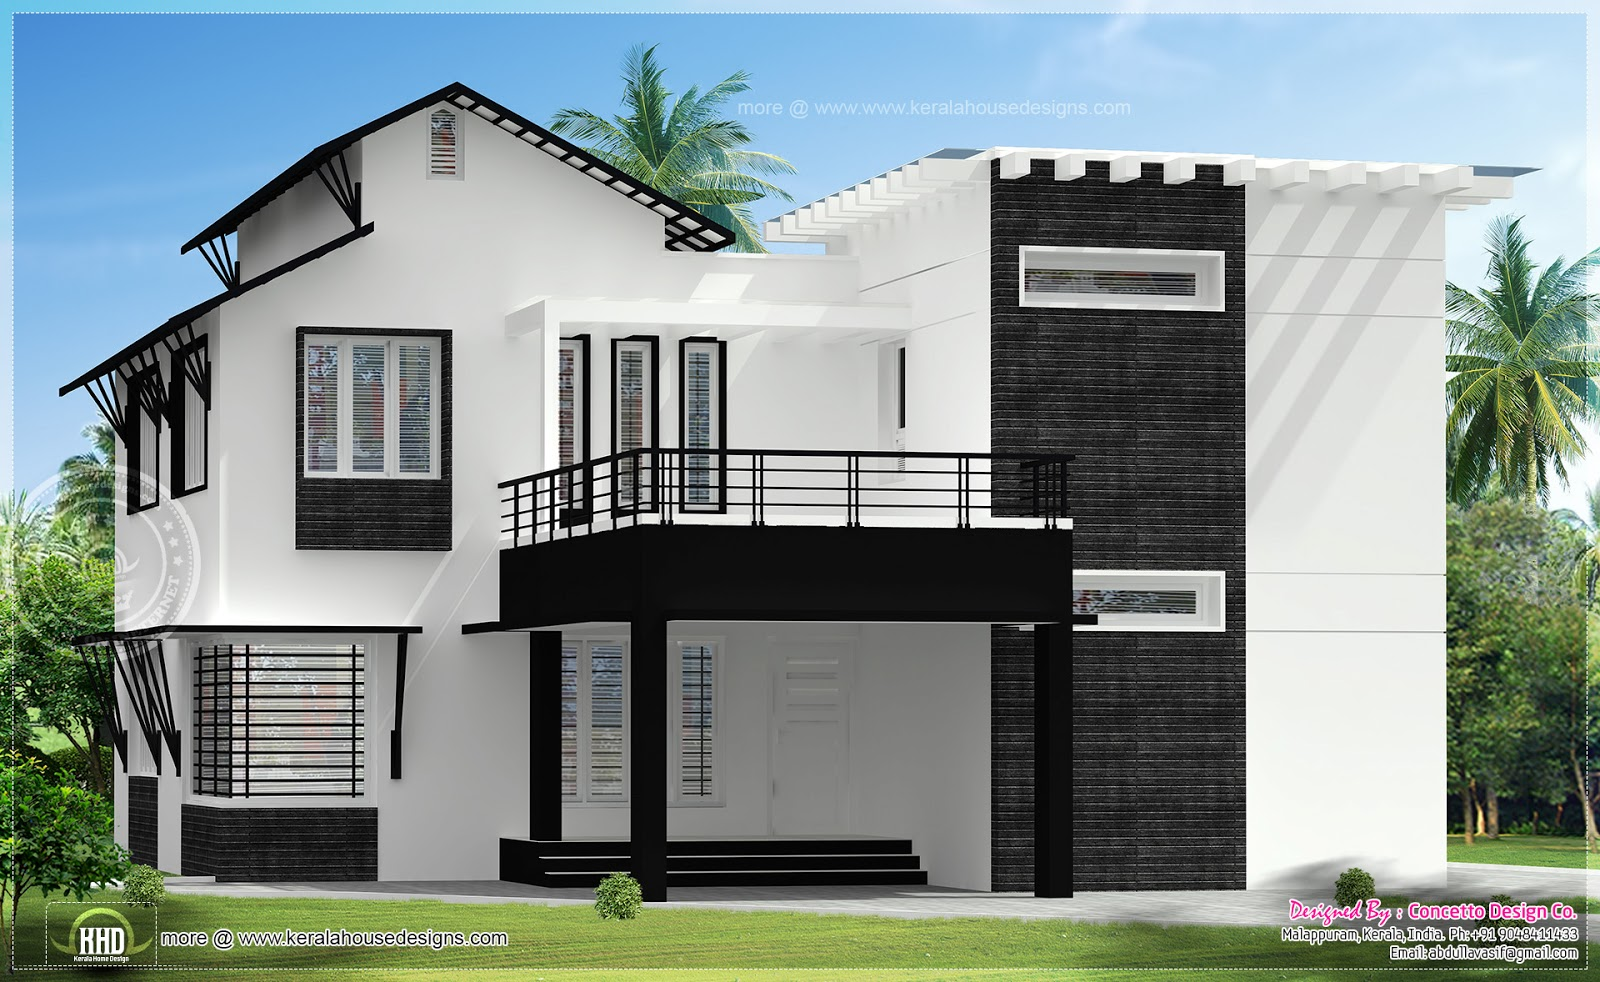 5 different house exteriors by concetto design kerala for Kerala style home designs and elevations